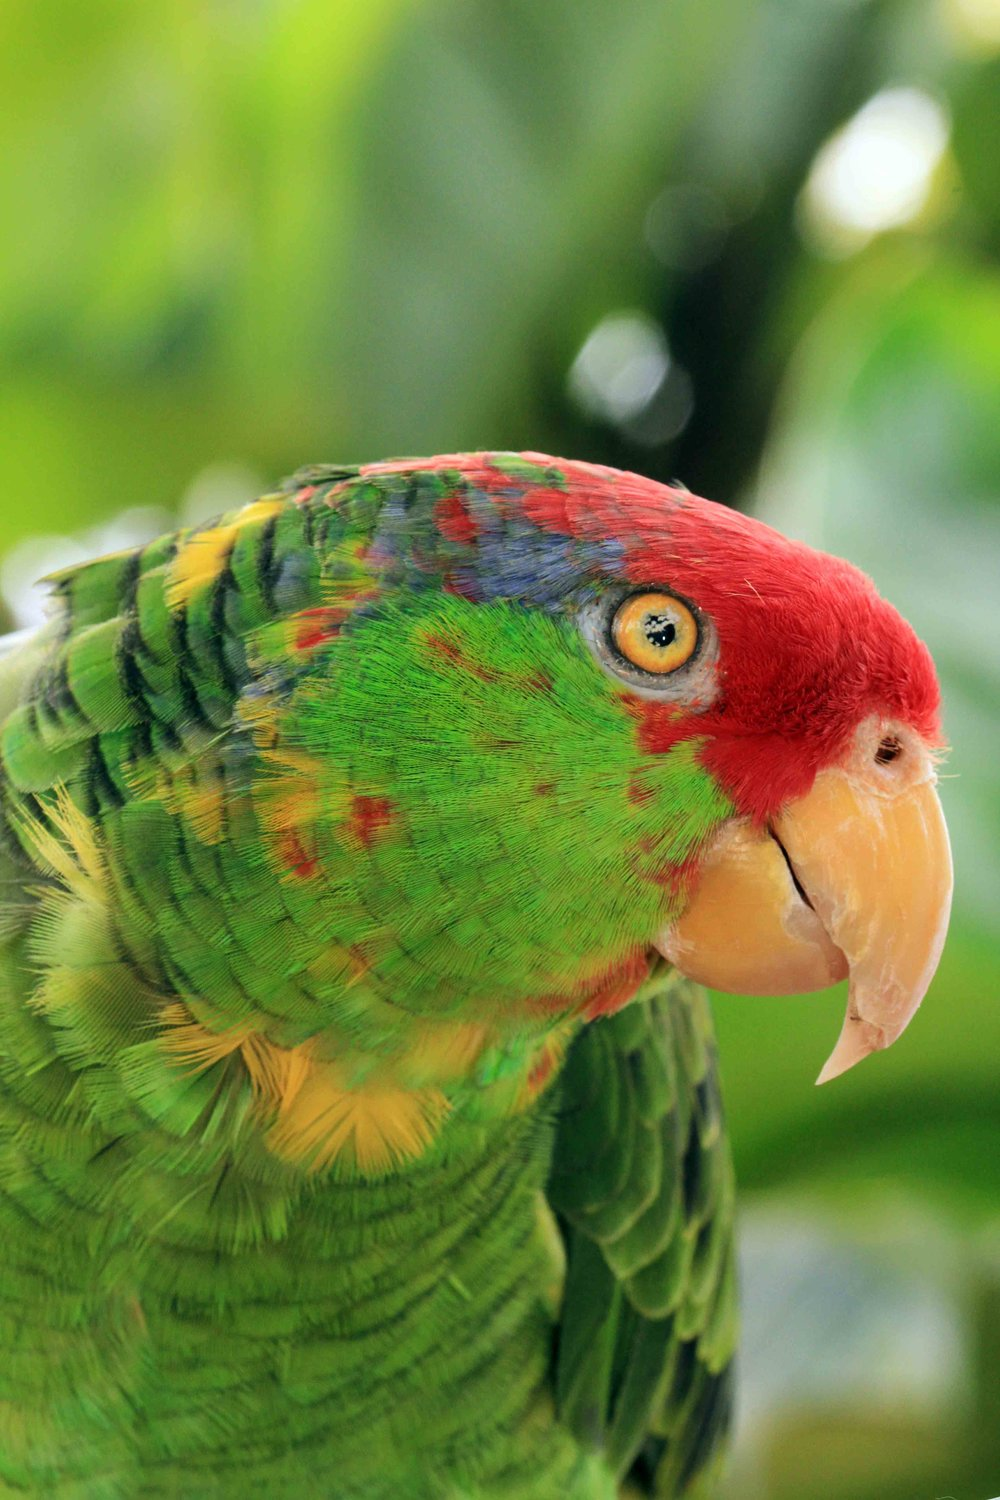 Paco, Mexican Red-Headed Amazon